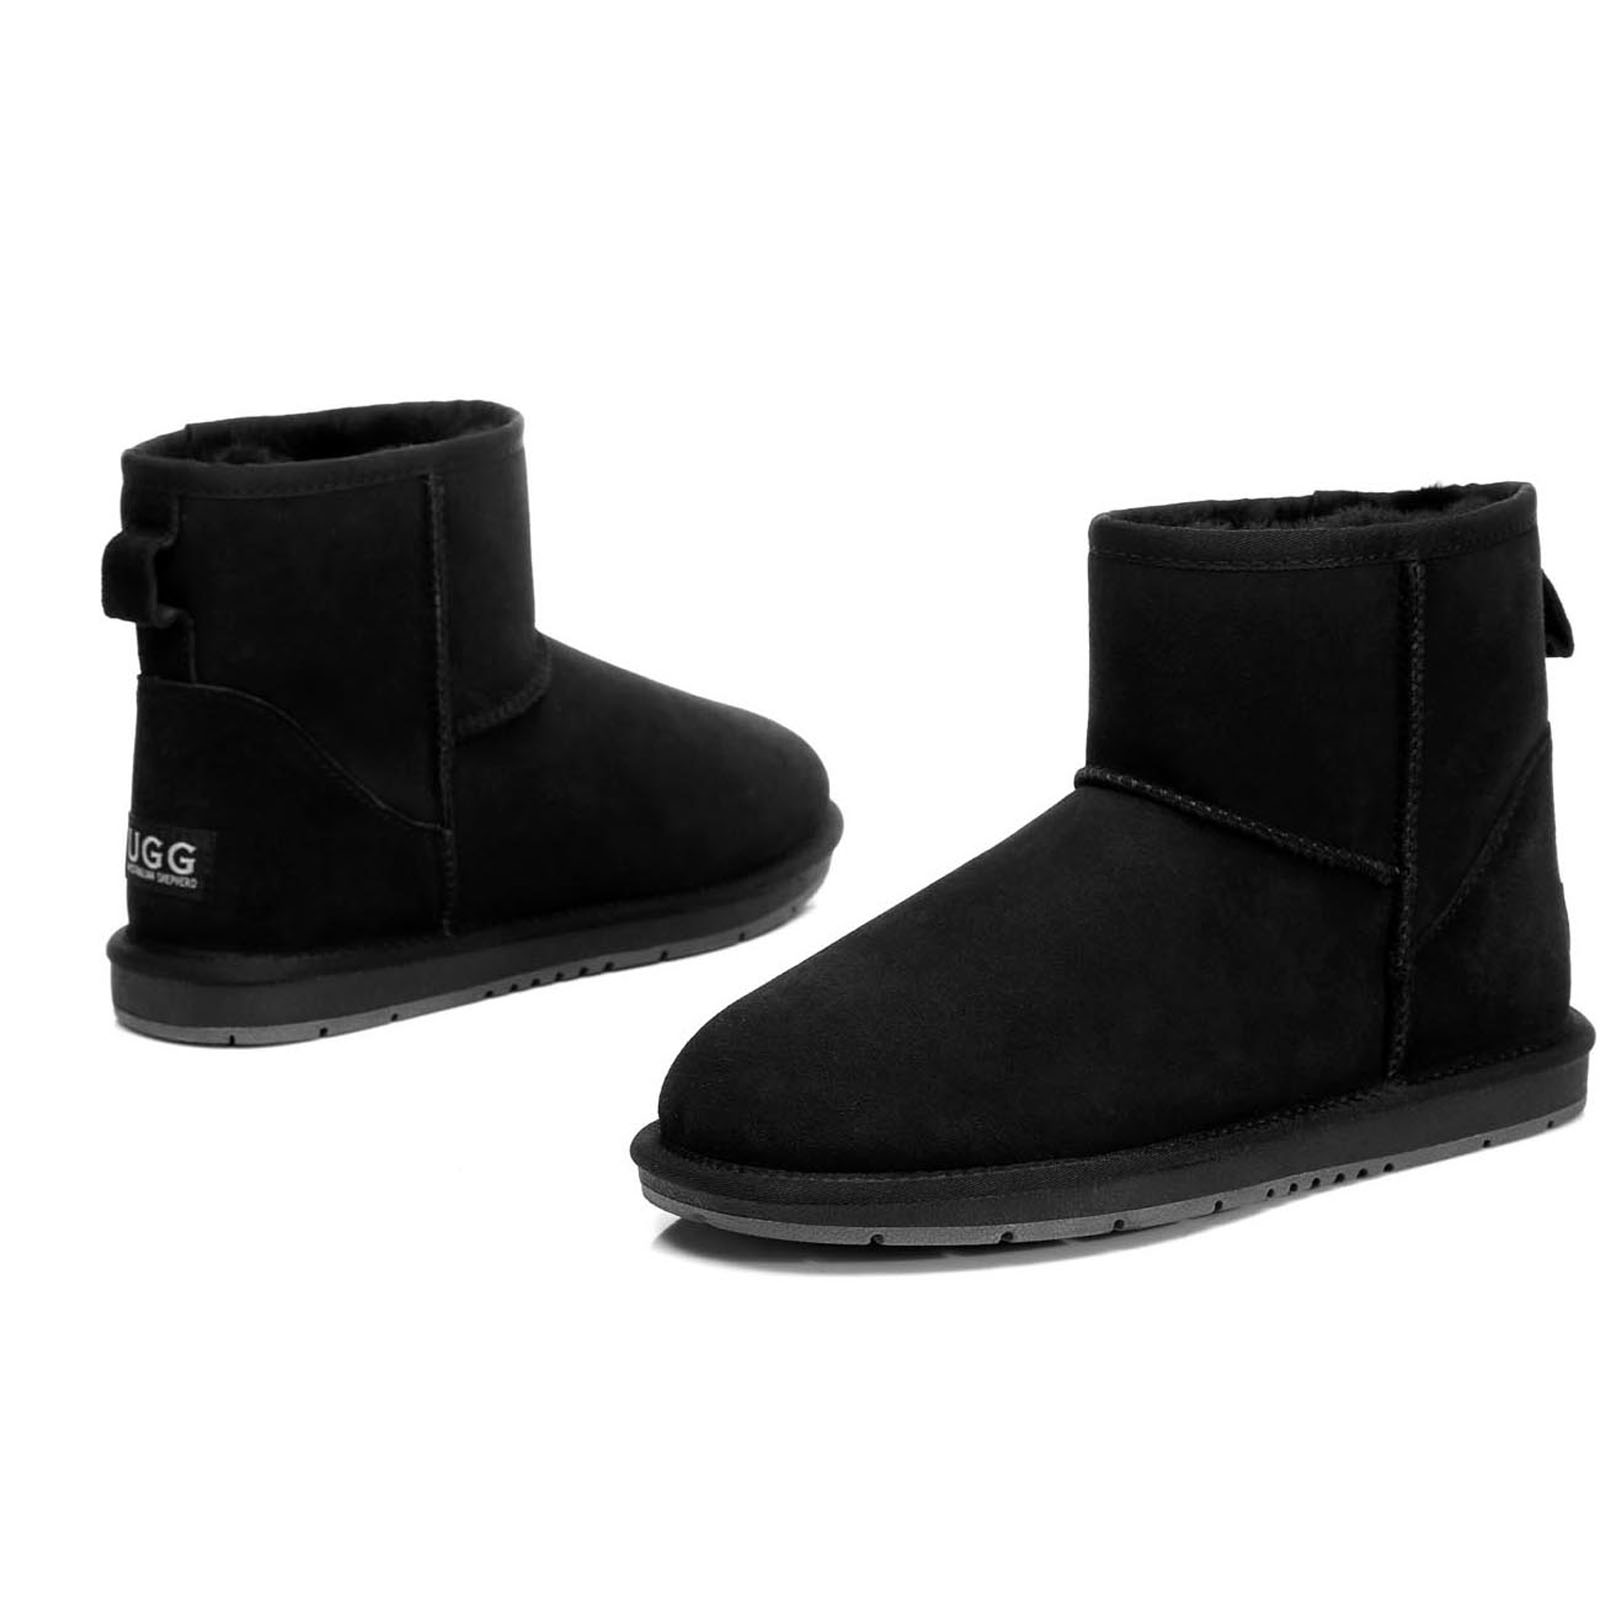 Ugg-Boots-Women-Men-Mini-Classic-Australian-Sheepskin-